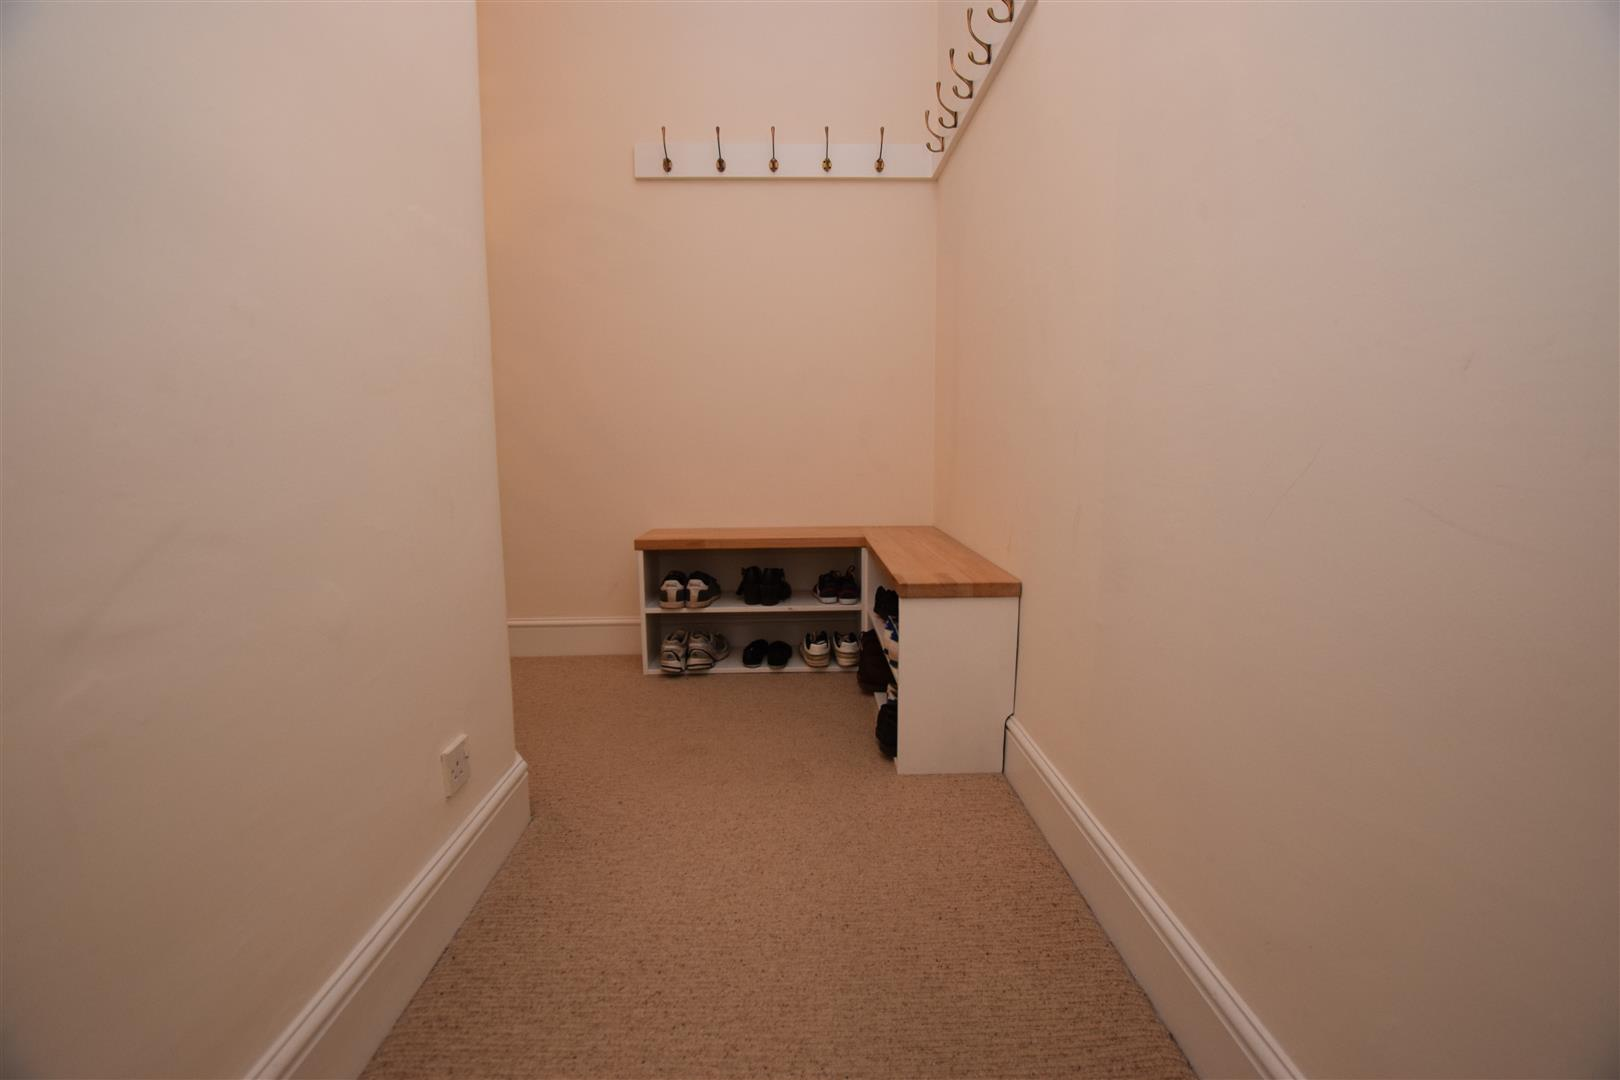 Flat 6, 13 and a half, York Place, Perth, Perthshire, PH2 8EP, UK